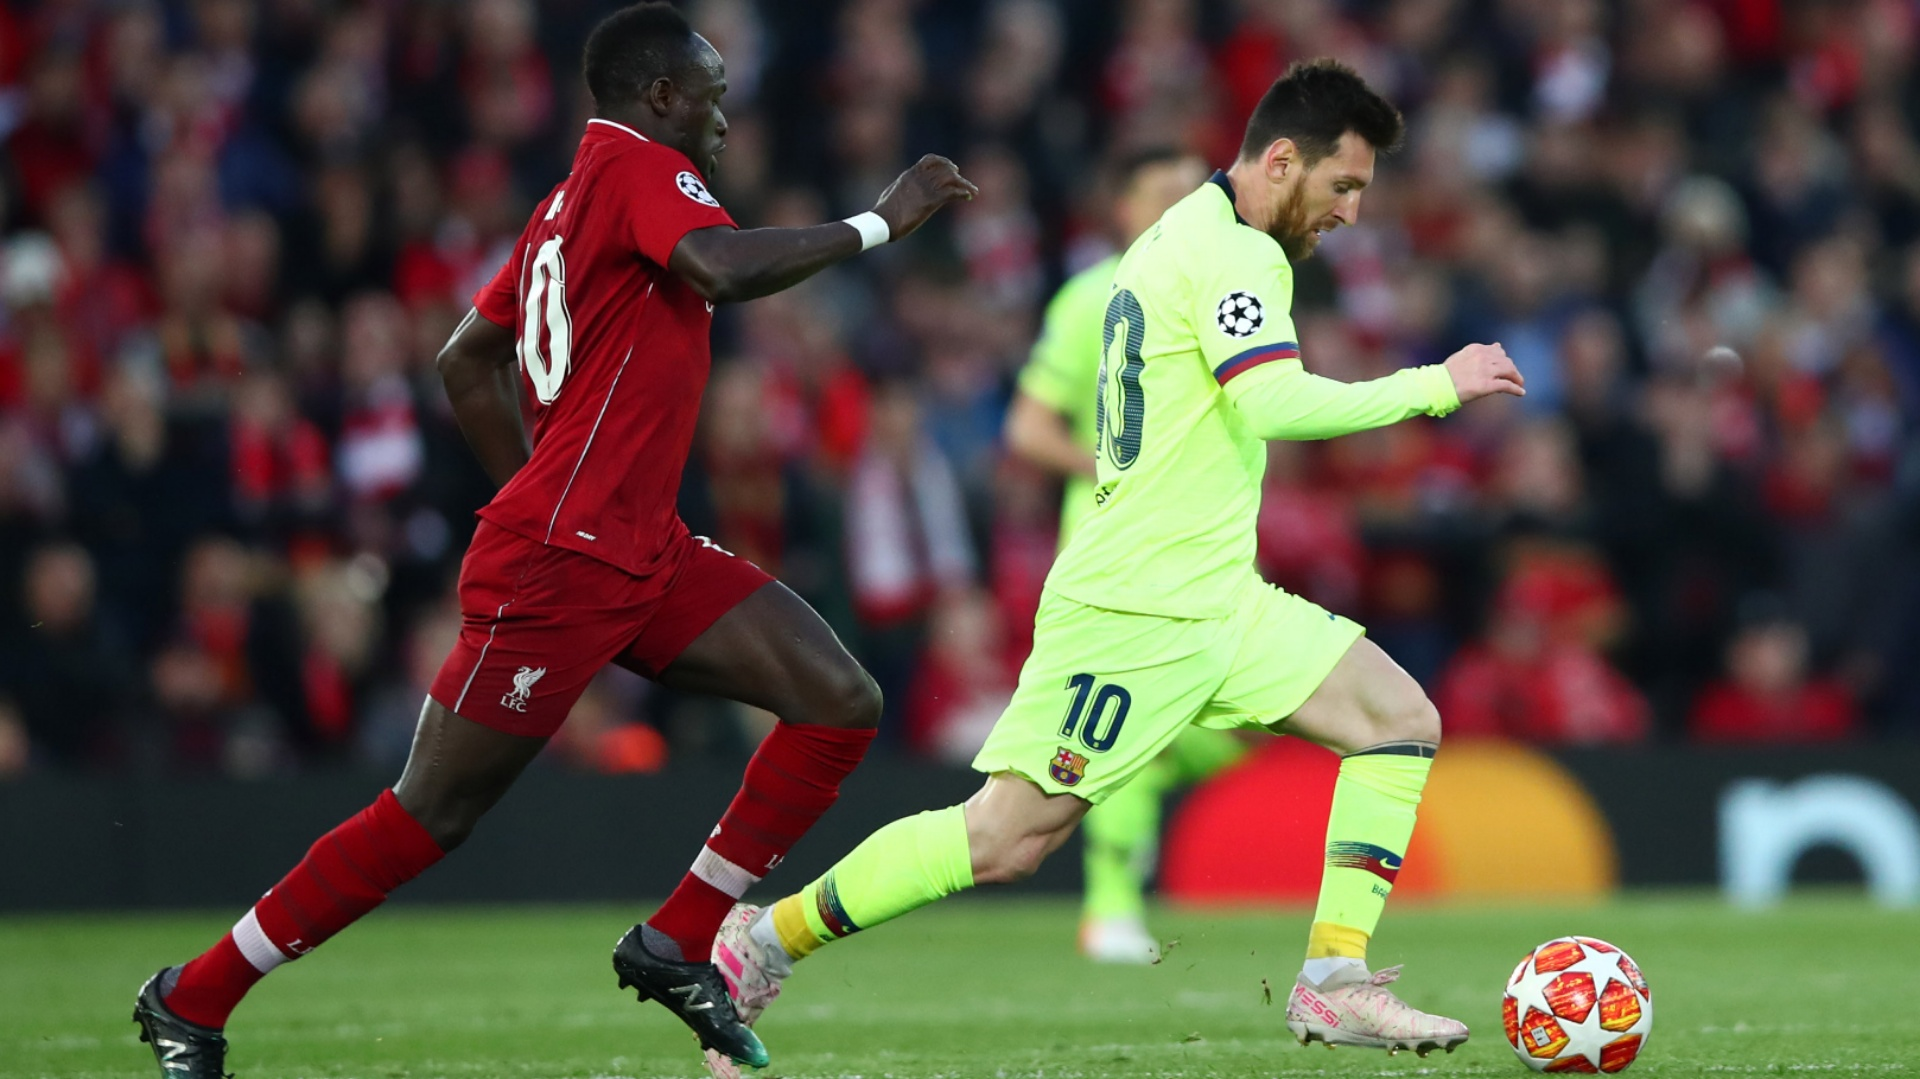 It is a shame Mane finished fourth in Ballon d'Or - Messi